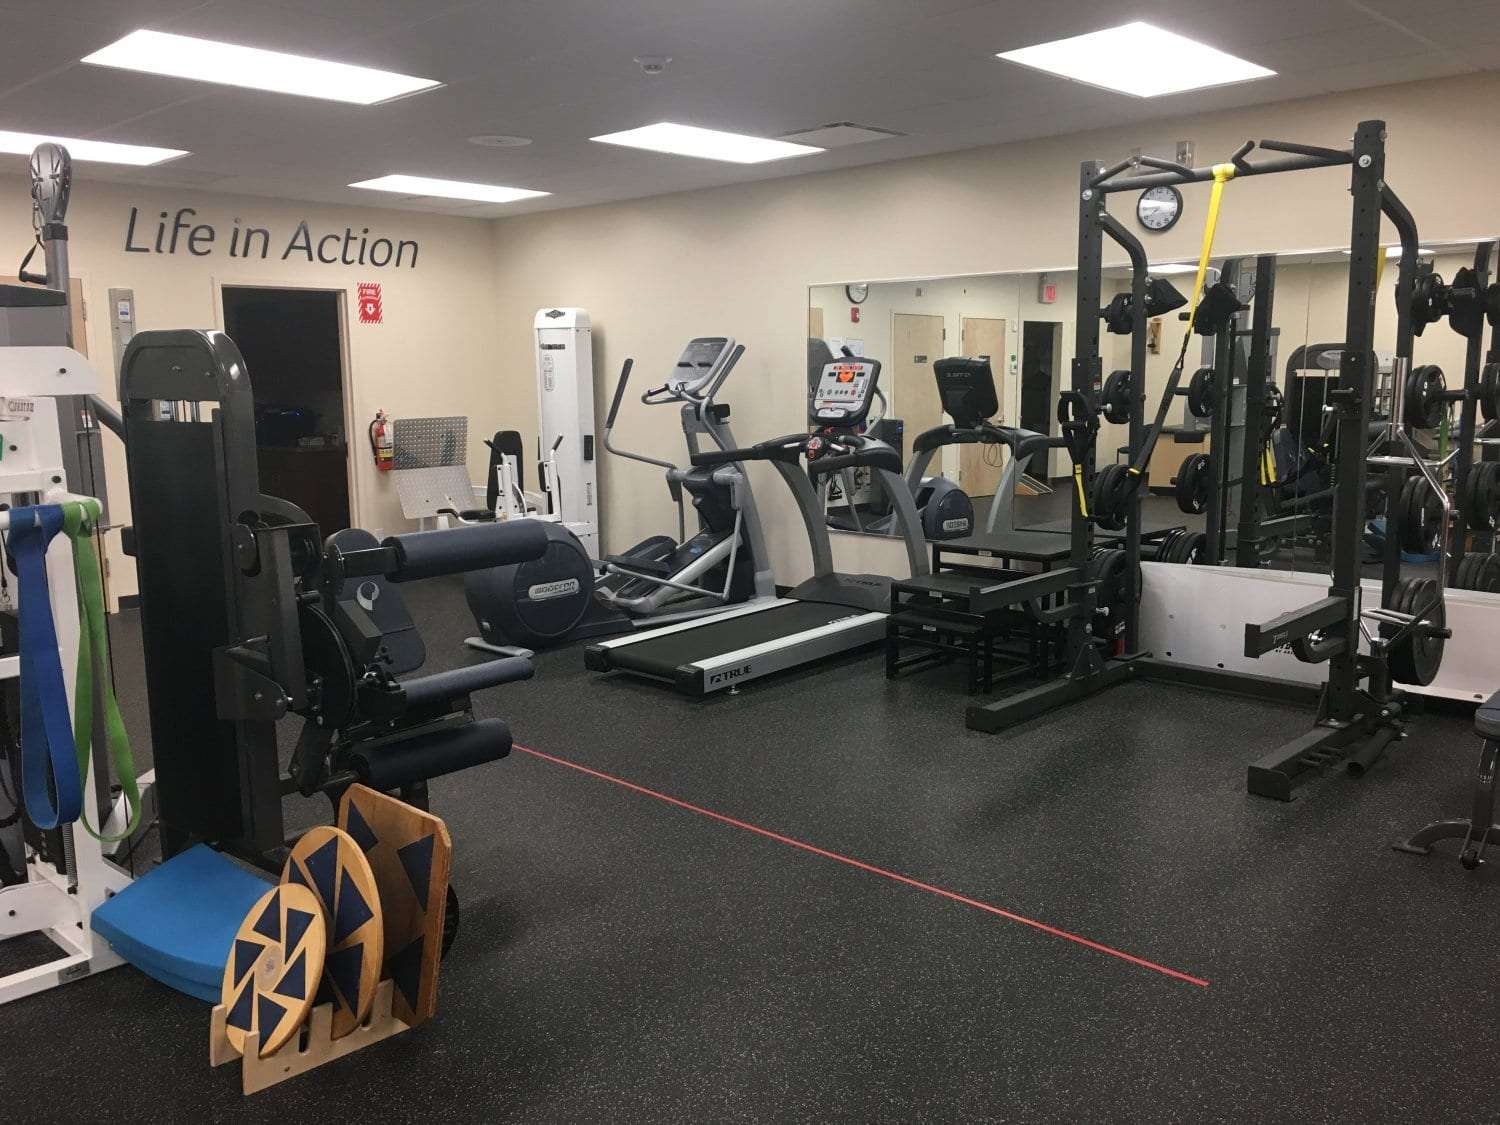 An image of the training room with equipment used for physical therapy at our clinic in Katonah, New York.